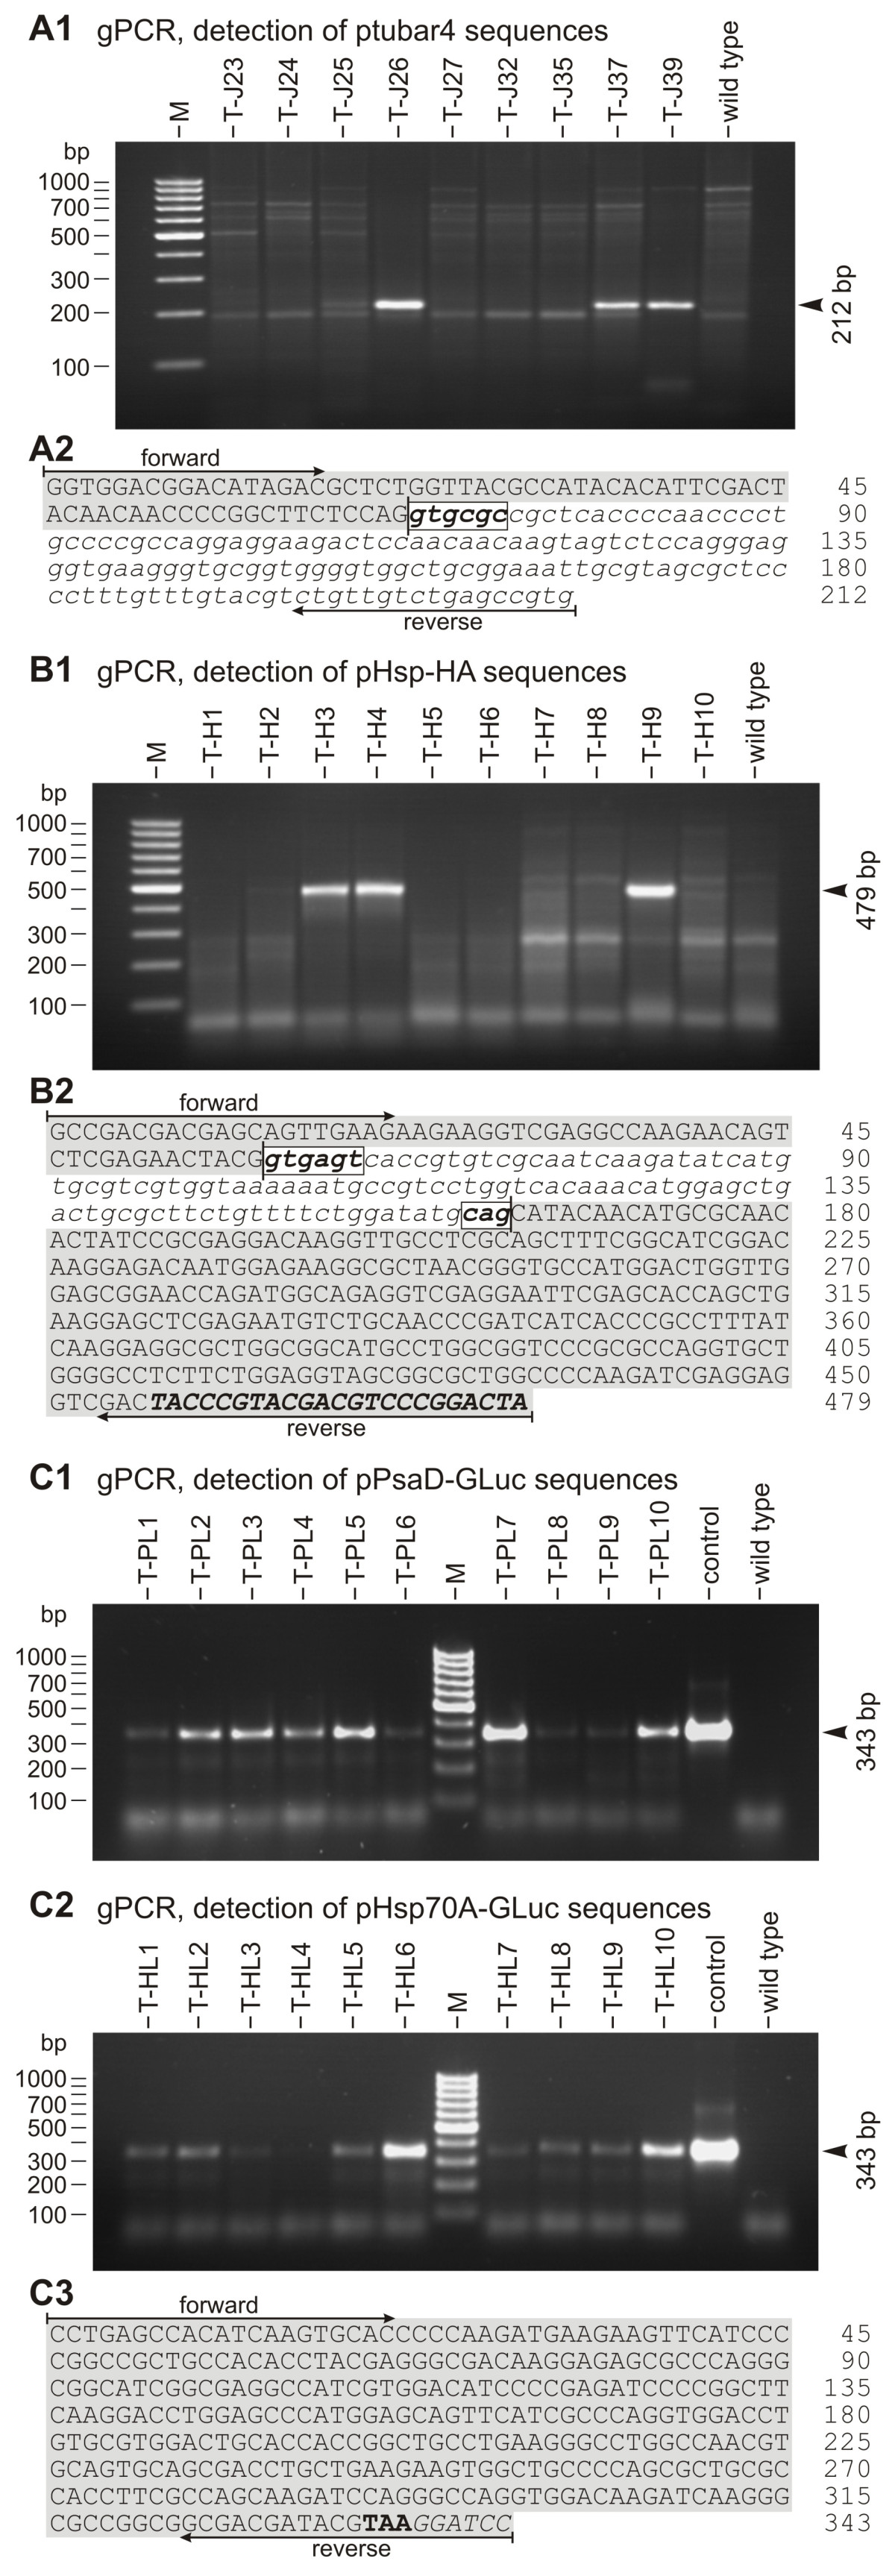 http://static-content.springer.com/image/art%3A10.1186%2F1472-6750-9-64/MediaObjects/12896_2009_Article_430_Fig5_HTML.jpg